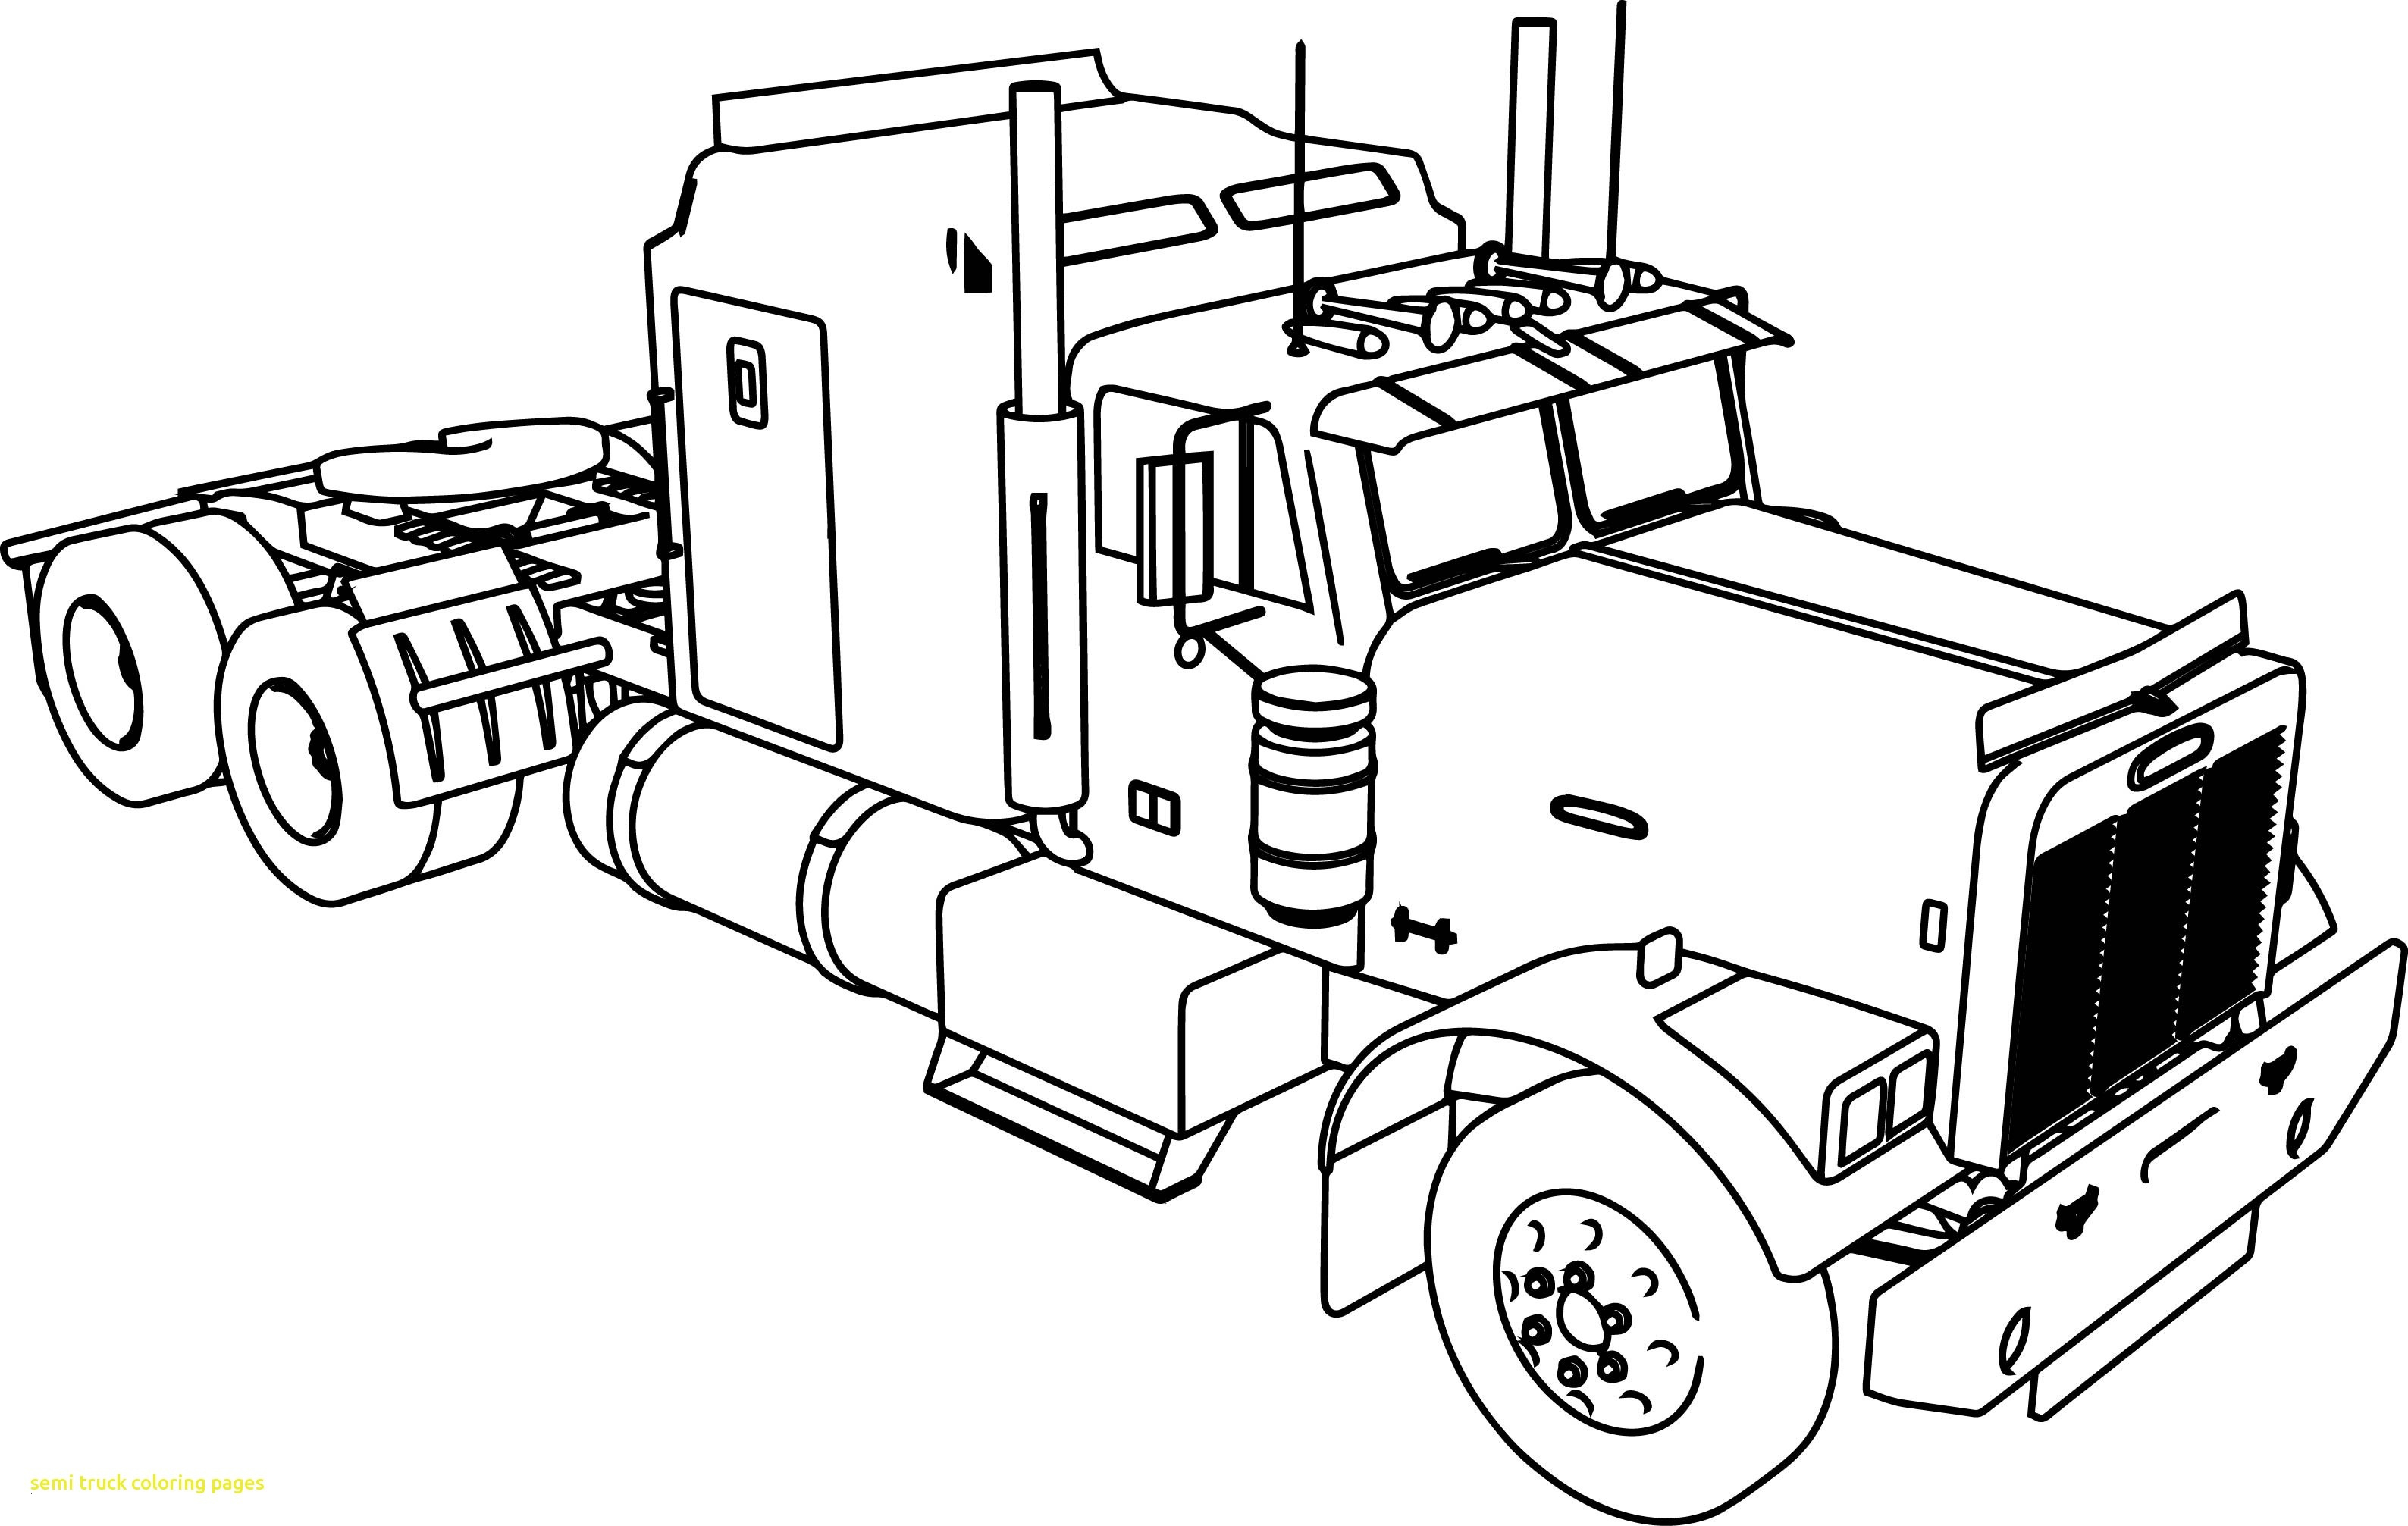 Dodge Ram Coloring Pages  Printable 11f - To print for your project